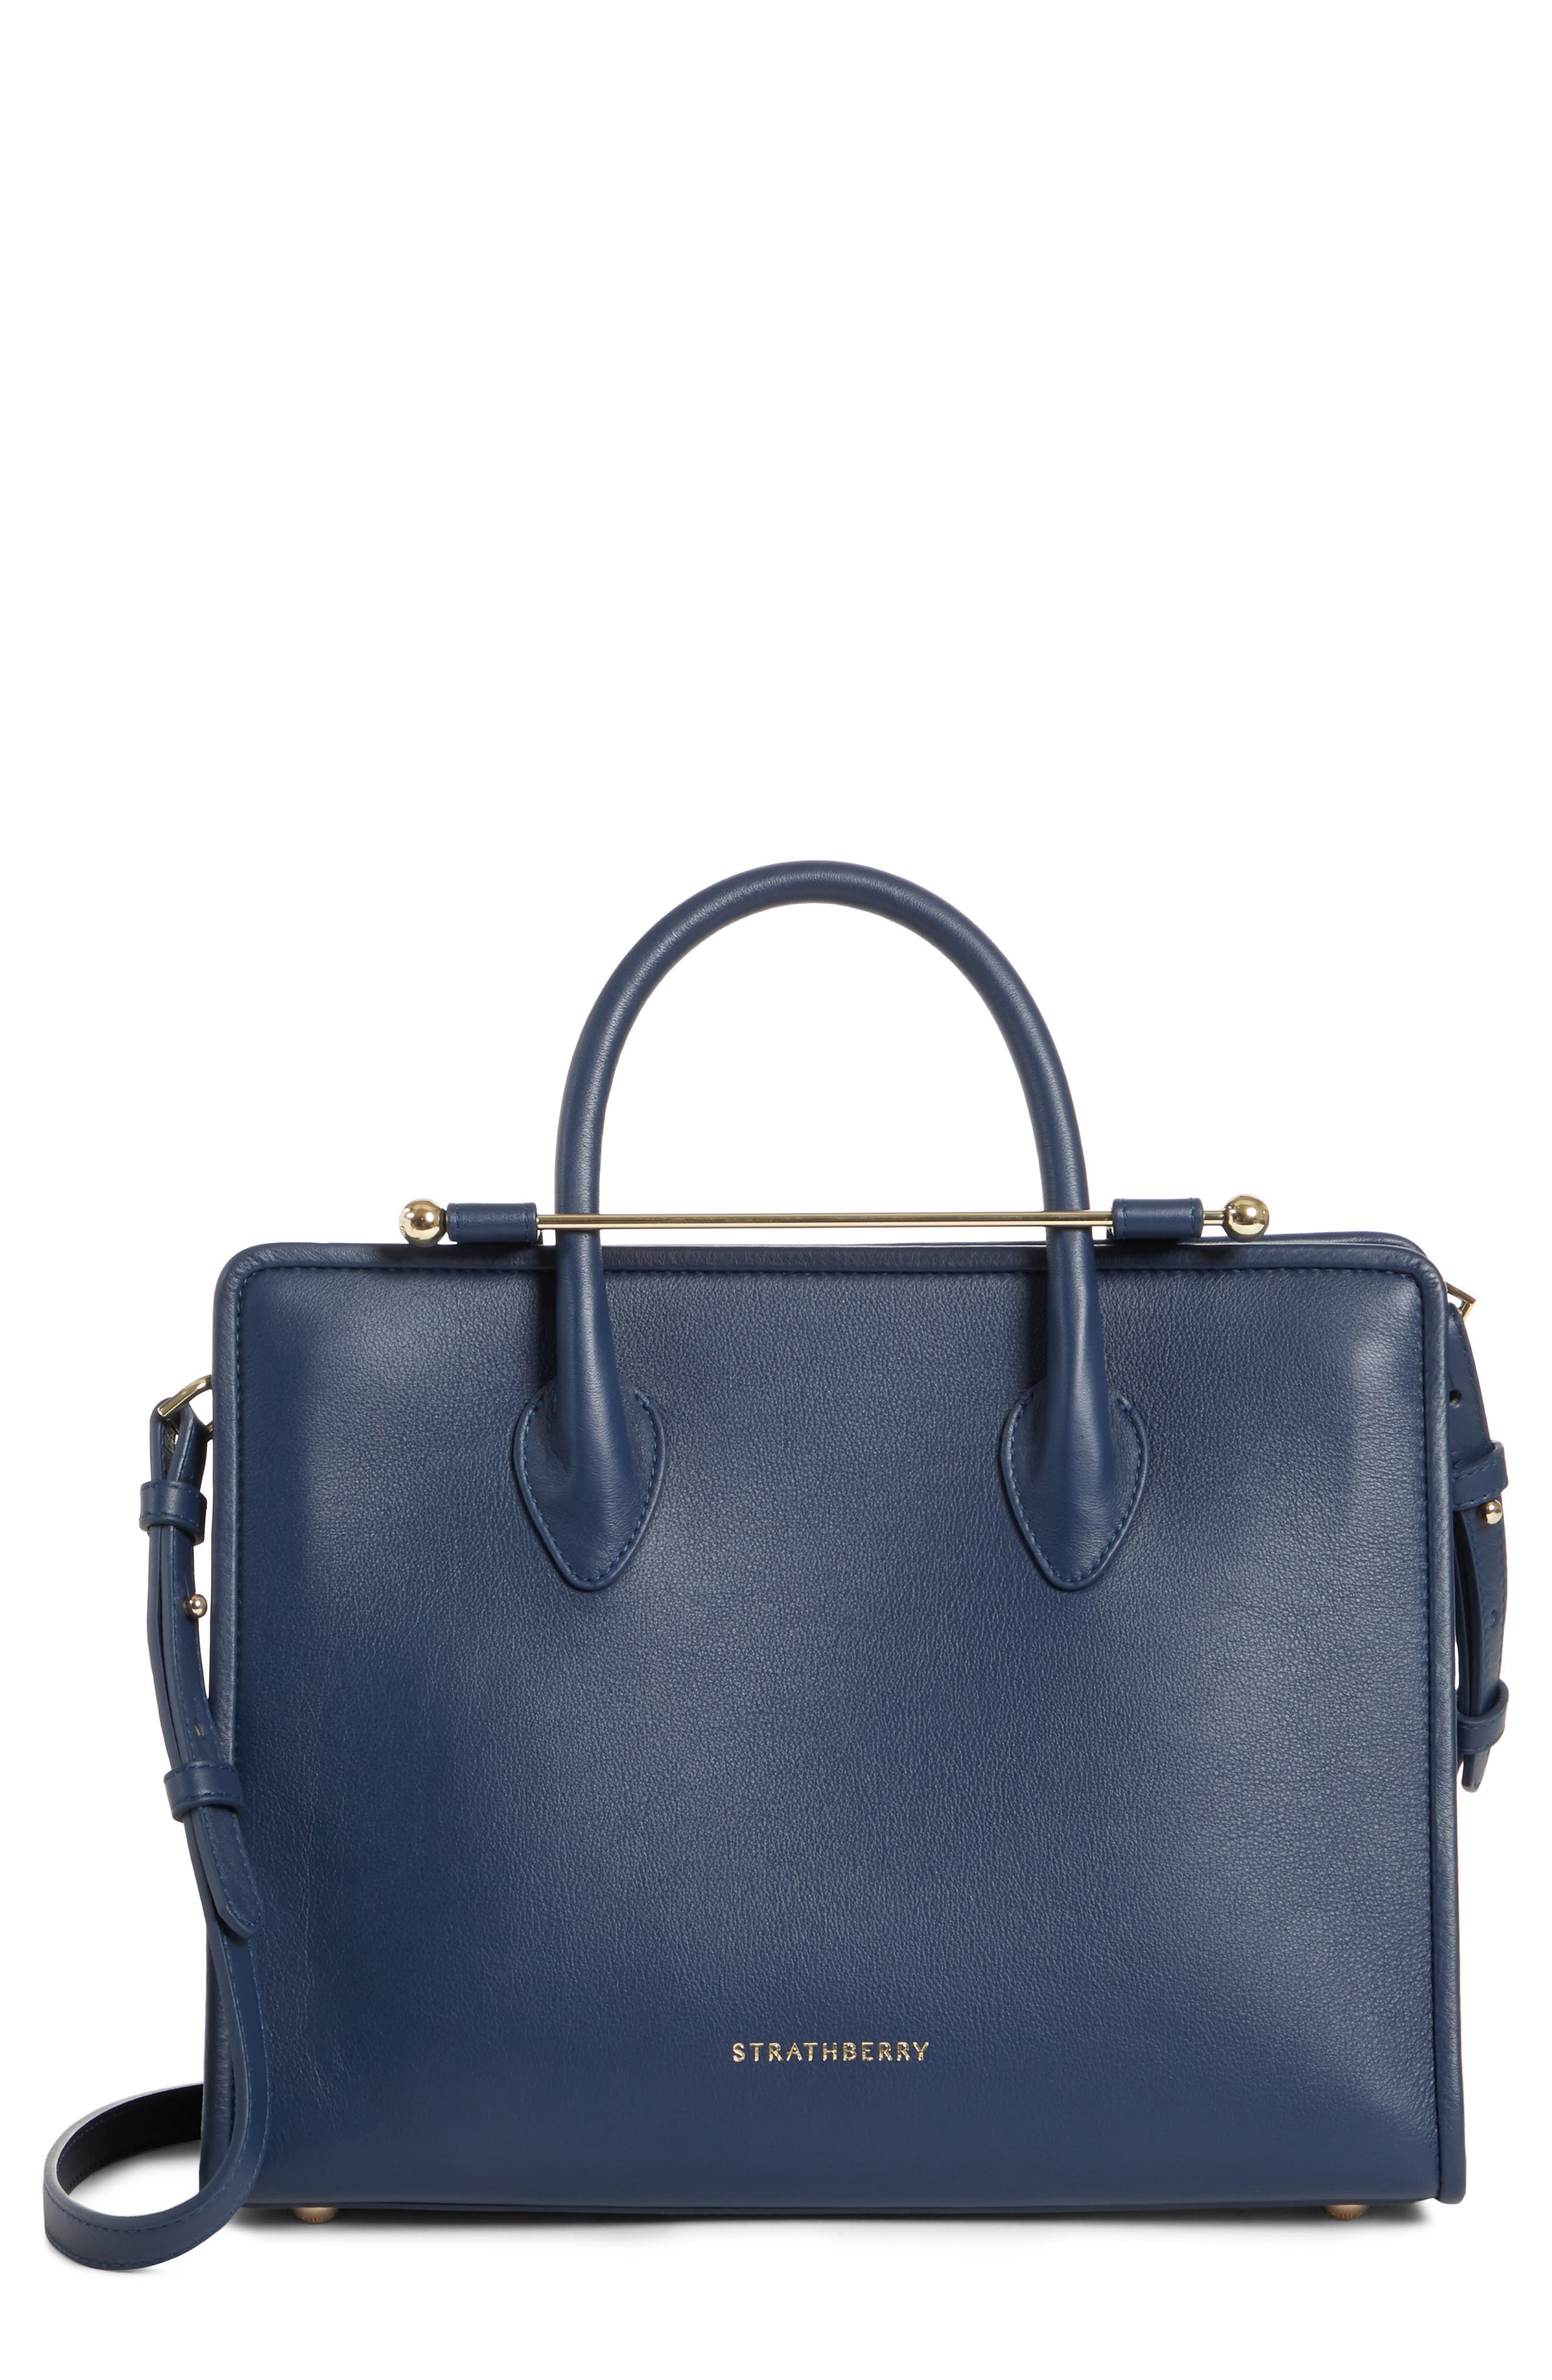 STRATHBERRY Midi Convertible Tote - Blue in Navy Blue